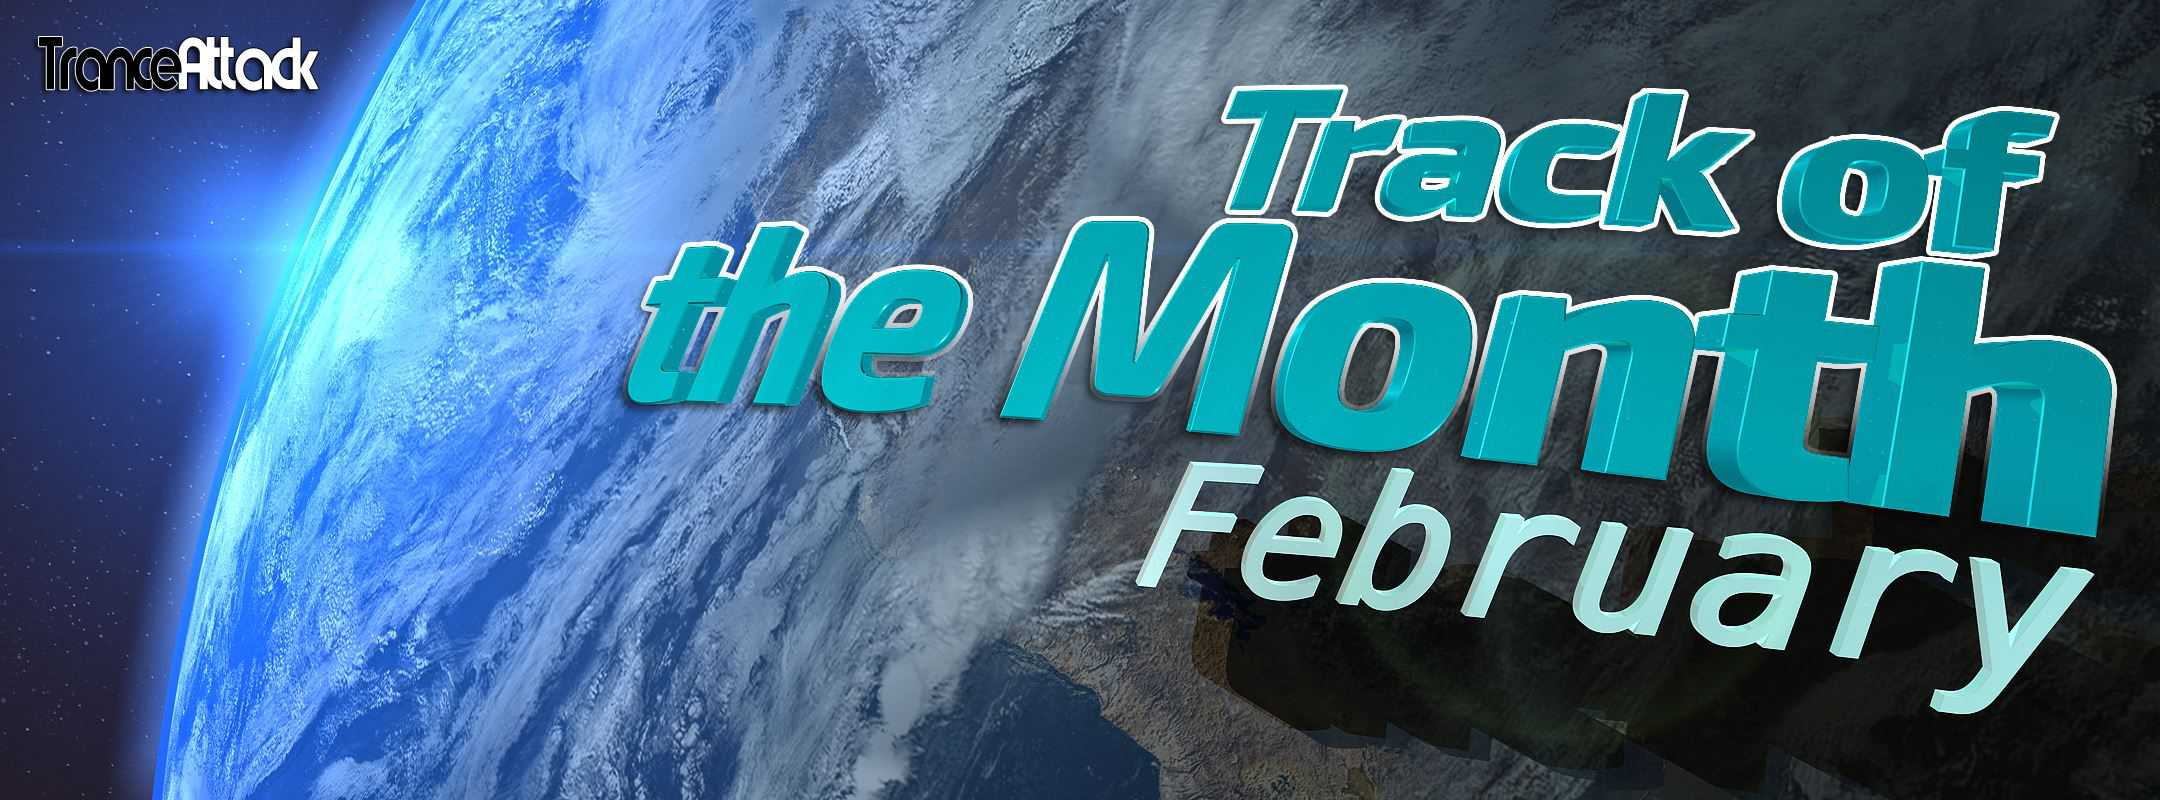 Voting: Track Of The Month February 2019